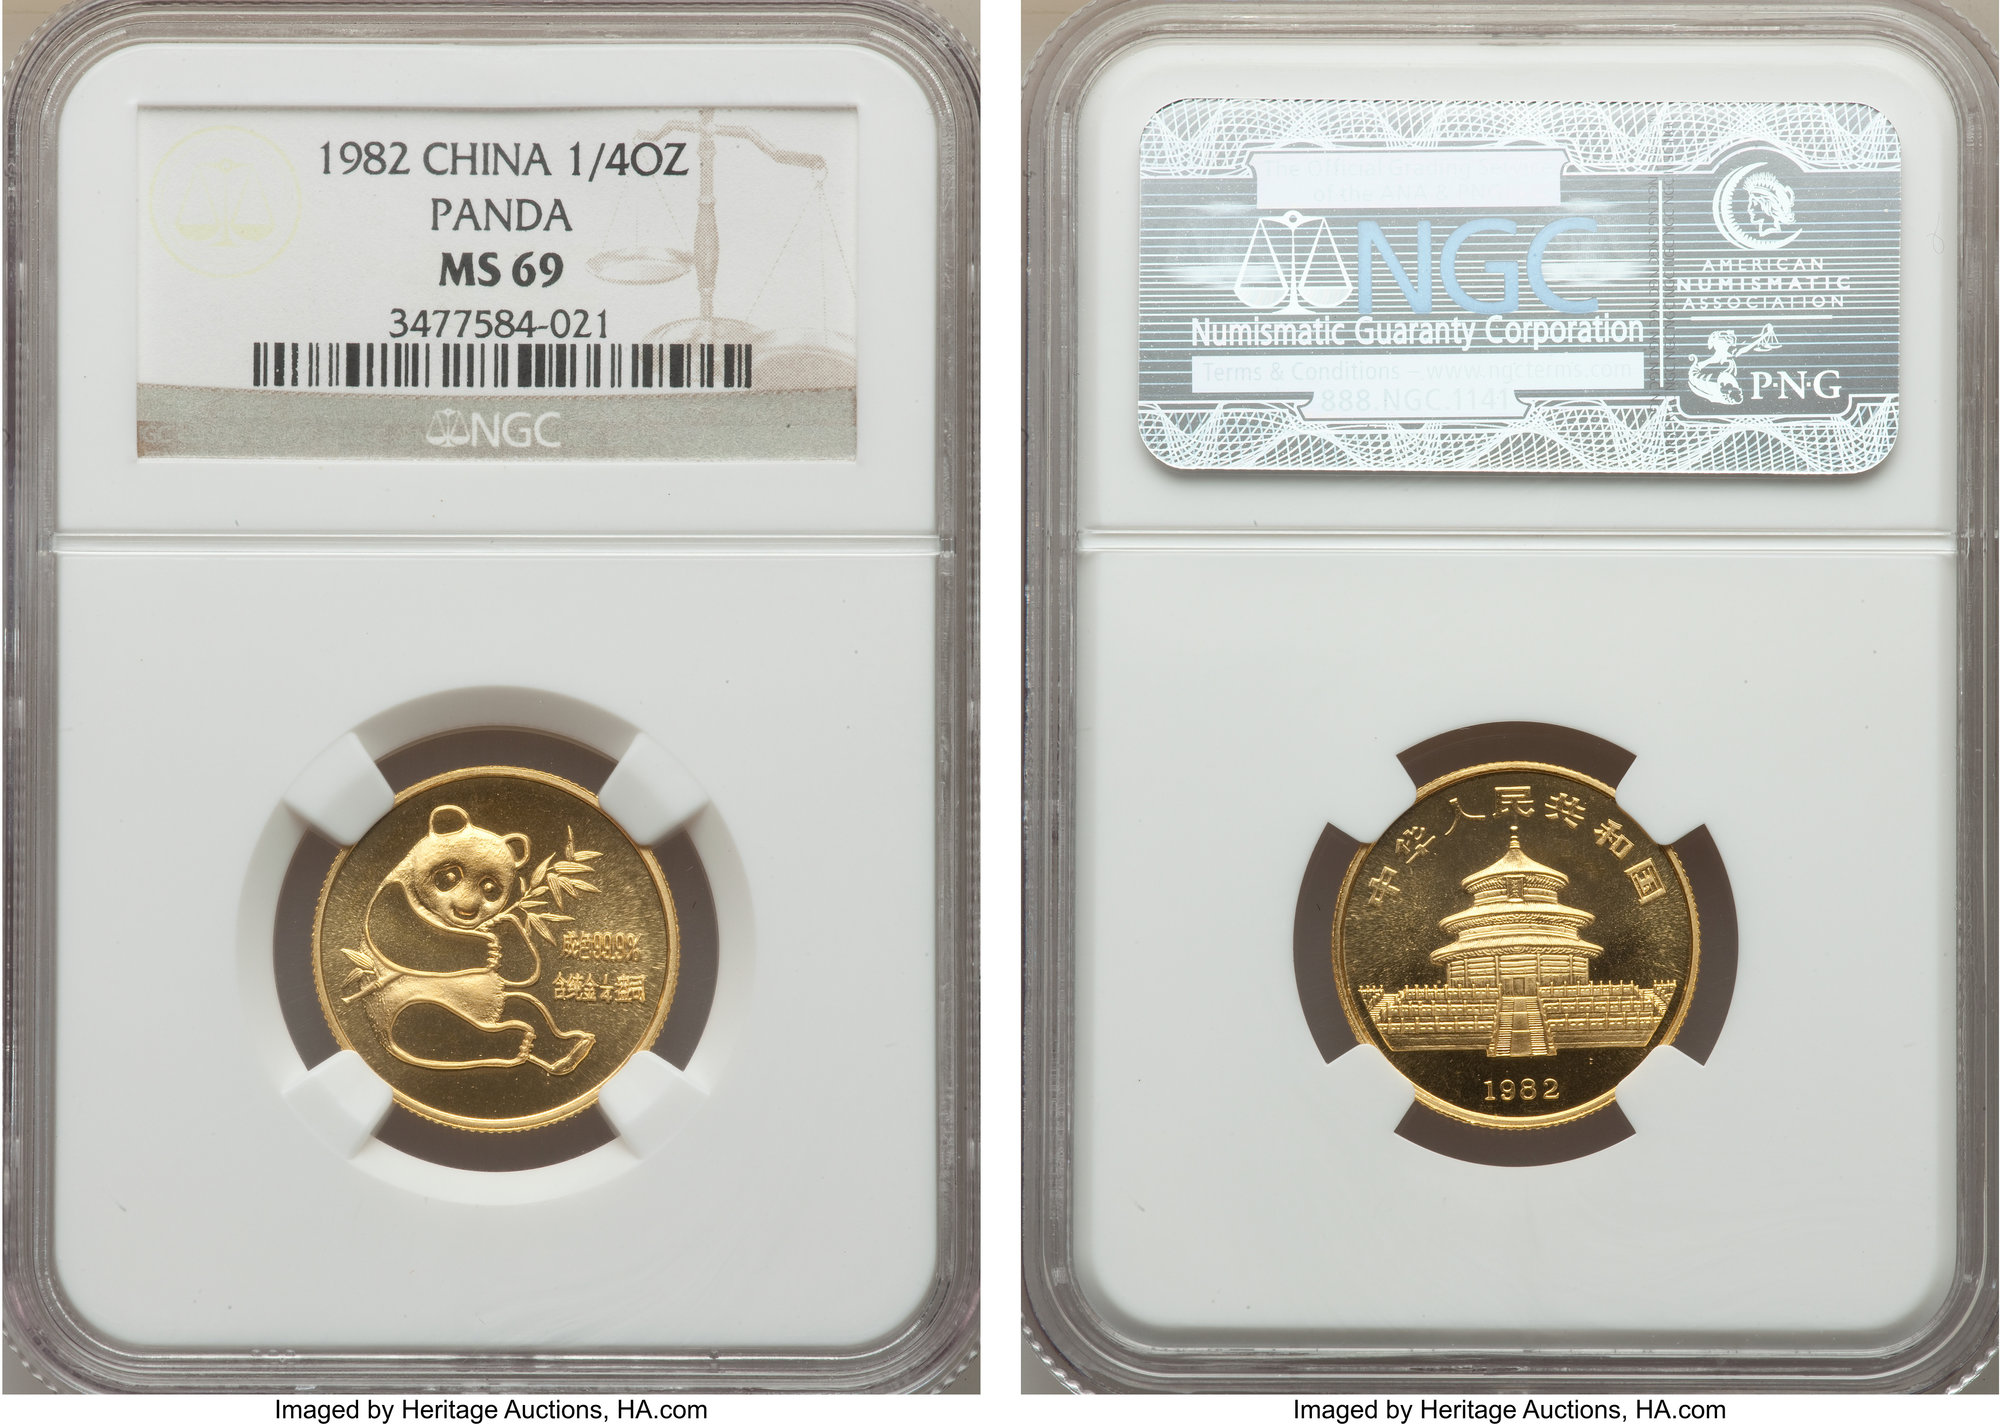 Numisbids Heritage World Coin Auctions Hong Kong Signature